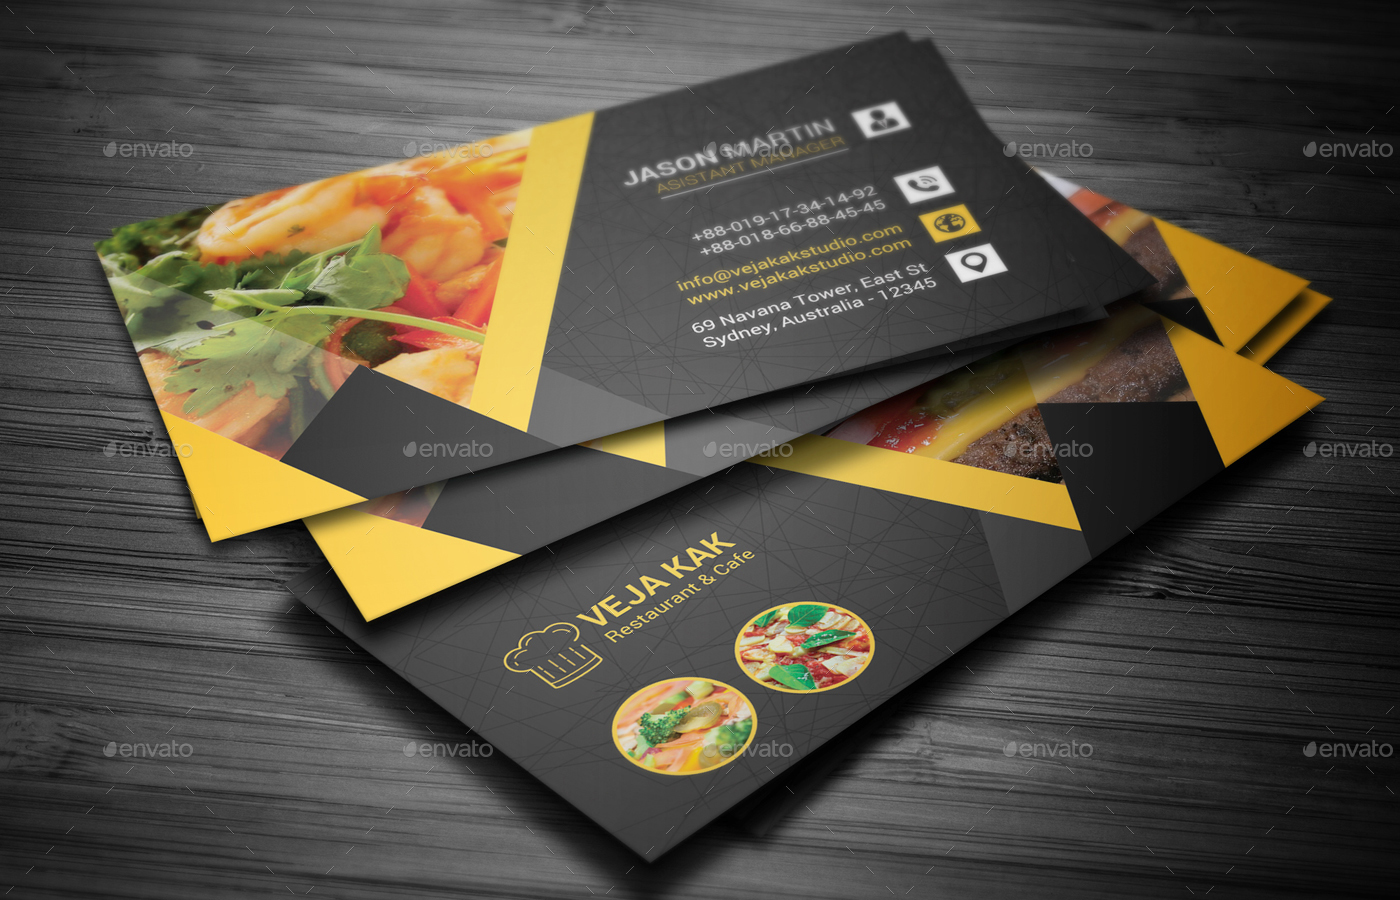 Restaurant business card by vejakakstudio graphicriver restaurant business card industry specific business cards preview01g preview02g magicingreecefo Image collections